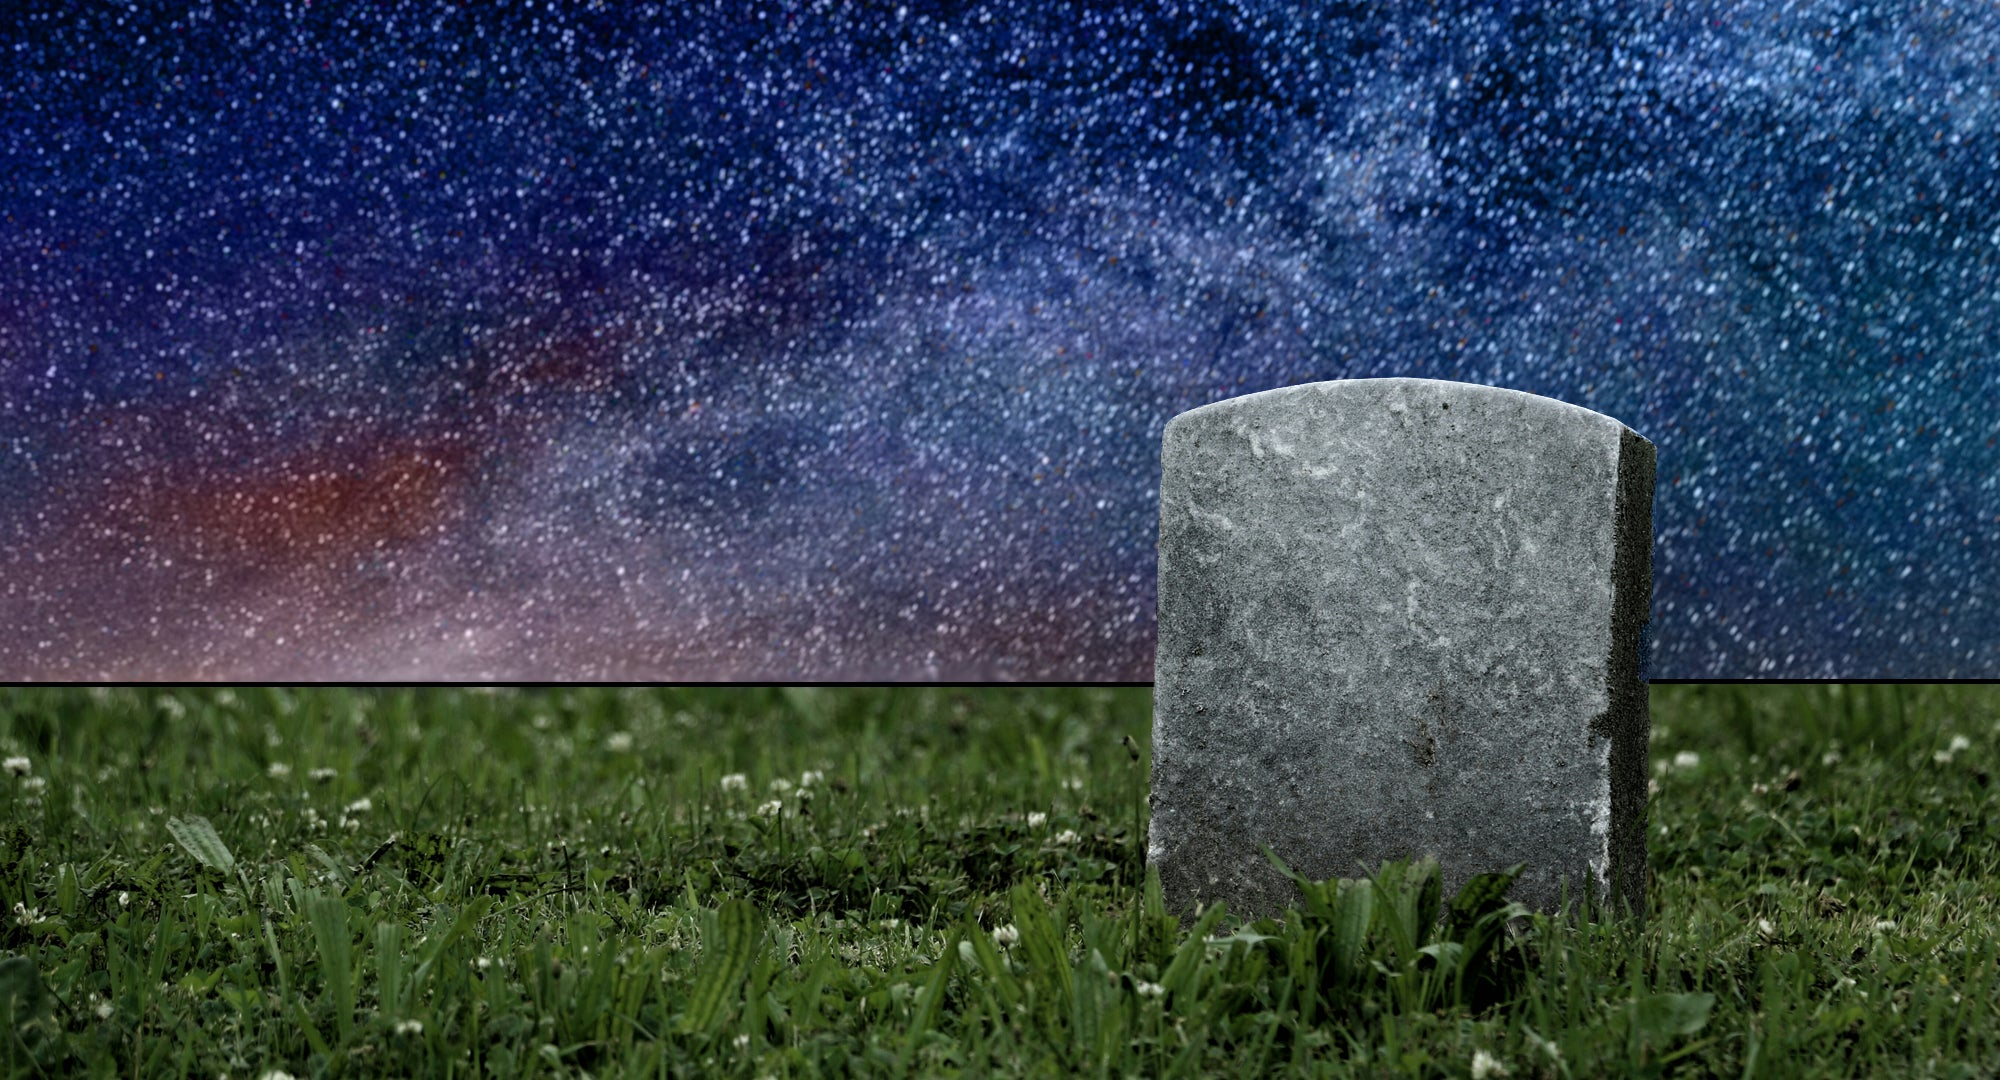 A tombstone surrounded by stars and grass.